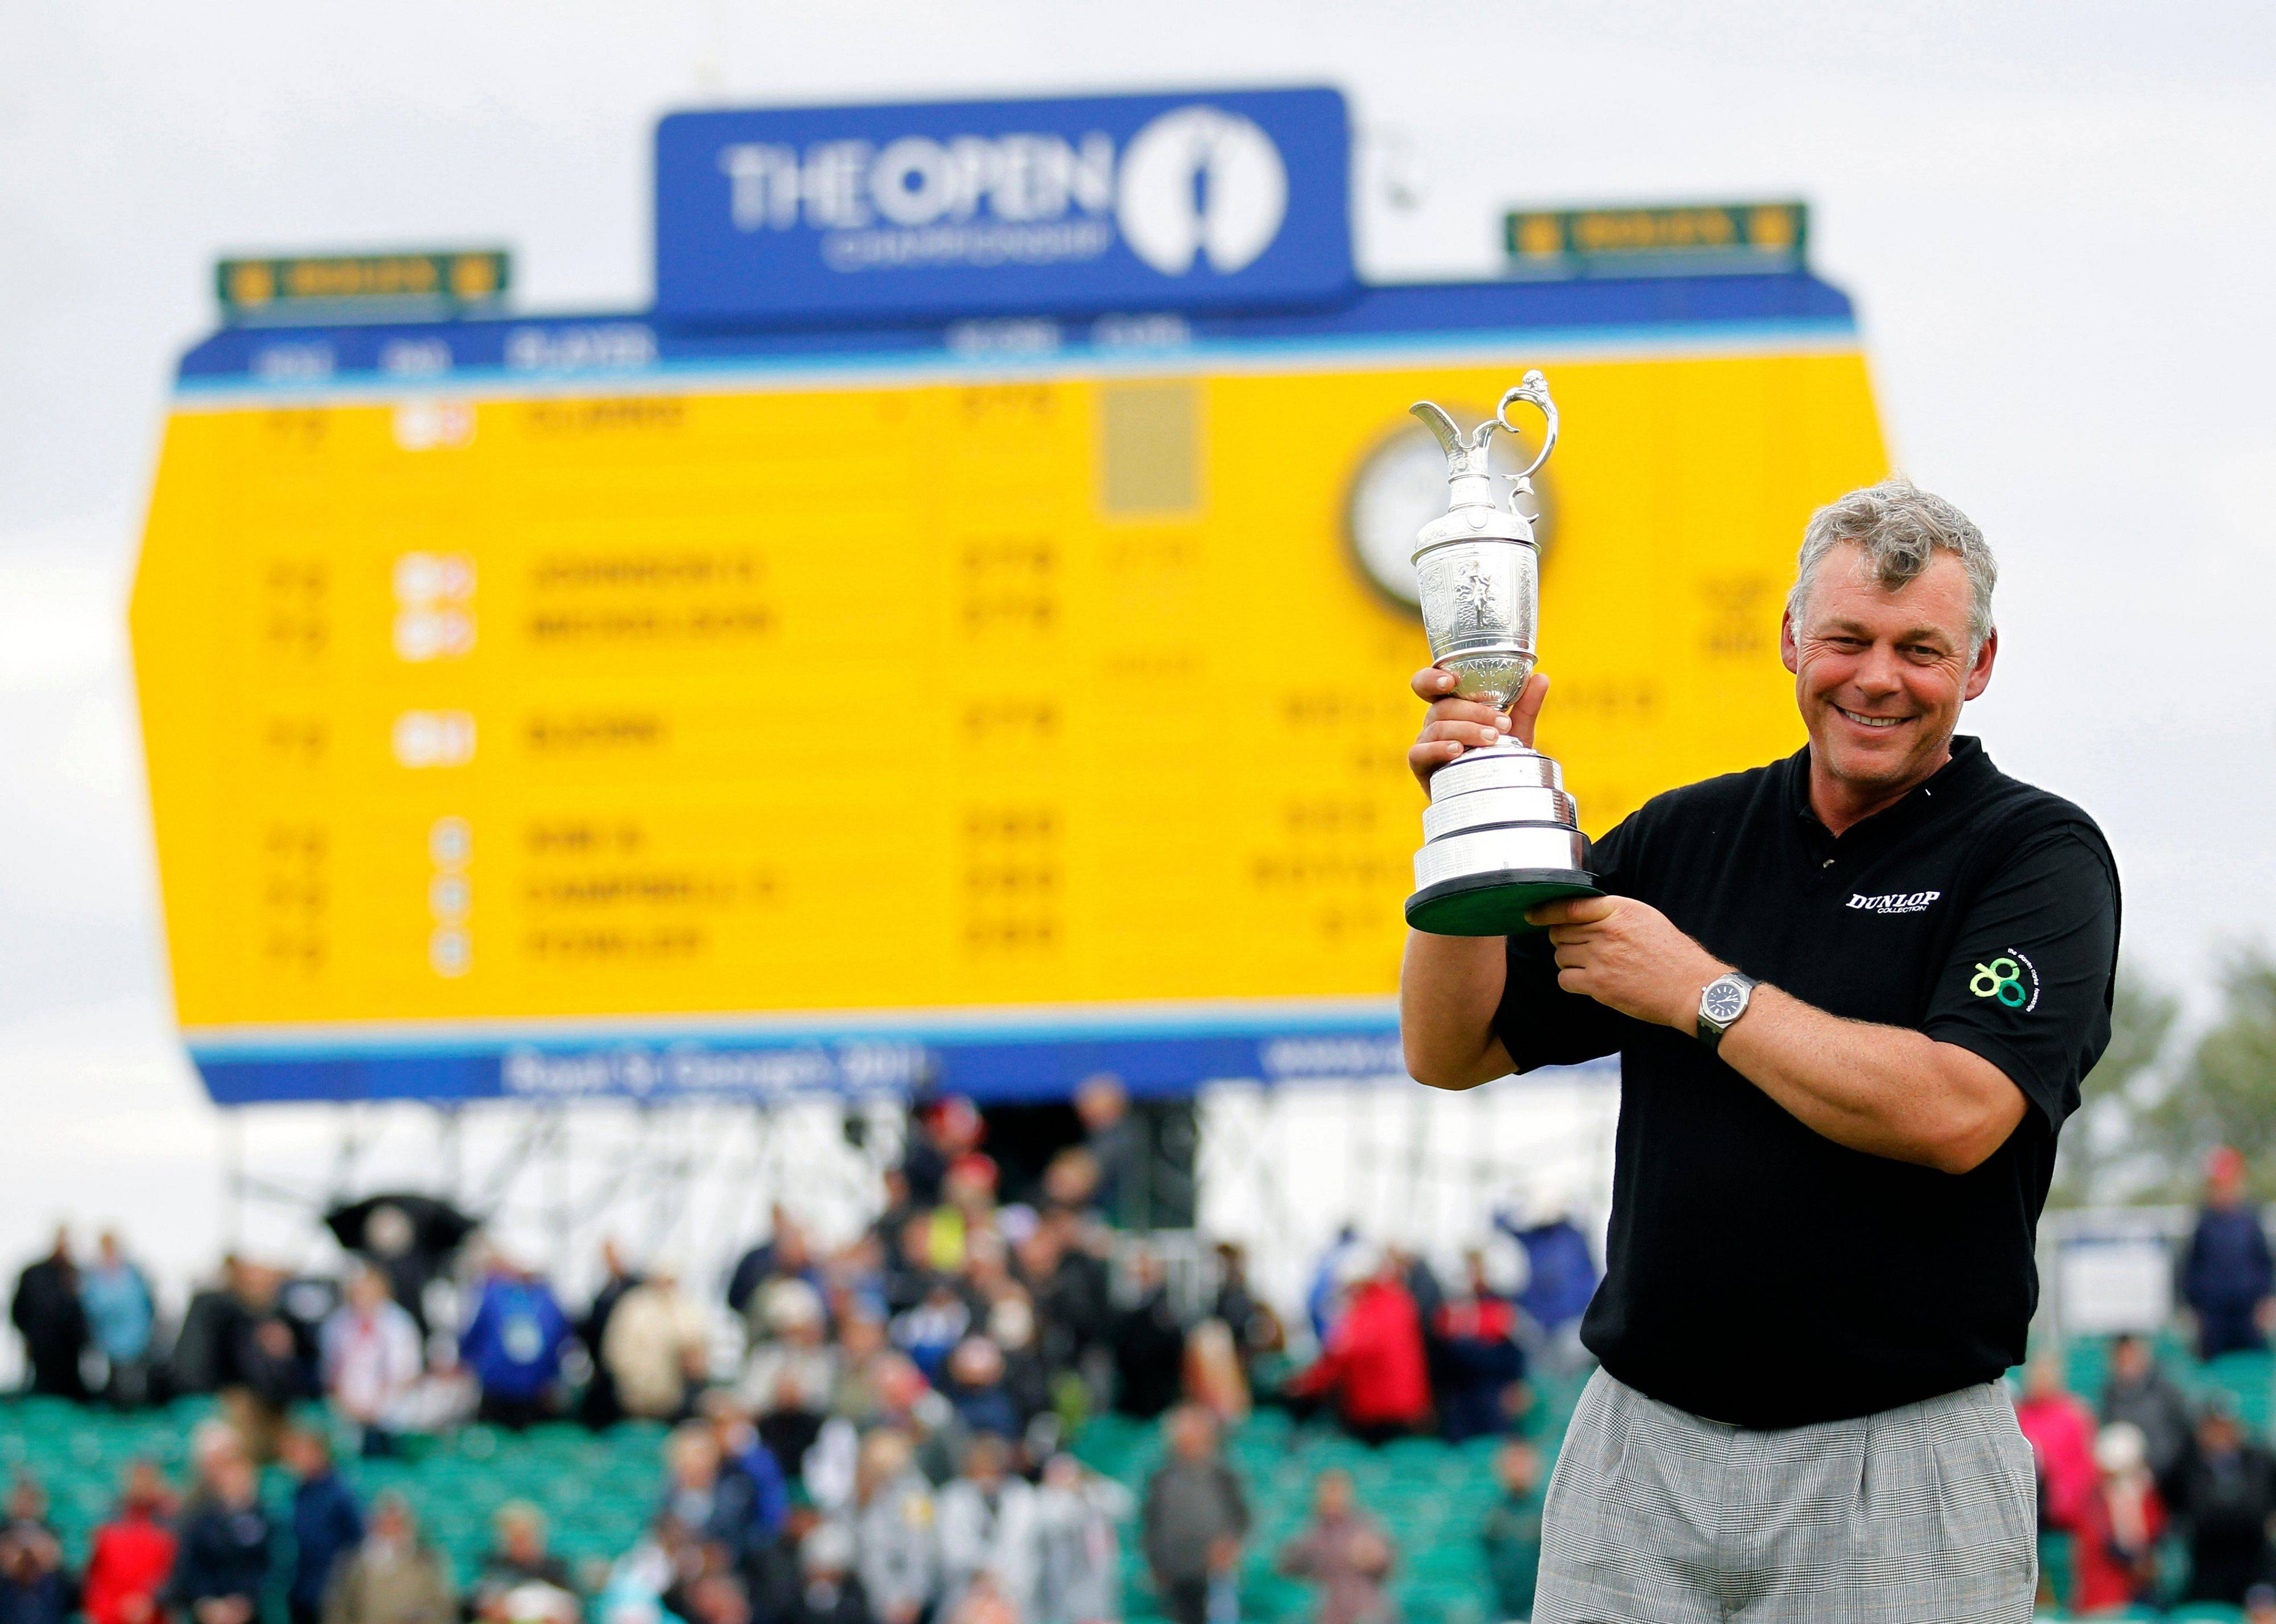 Northern Ireland's Darren Clarke holds the Claret Jug trophy in front of the scoreboard on the 18th green as he celebrates winning the British Open Golf Championship at Royal St George's golf course Sandwich, England, Sunday.